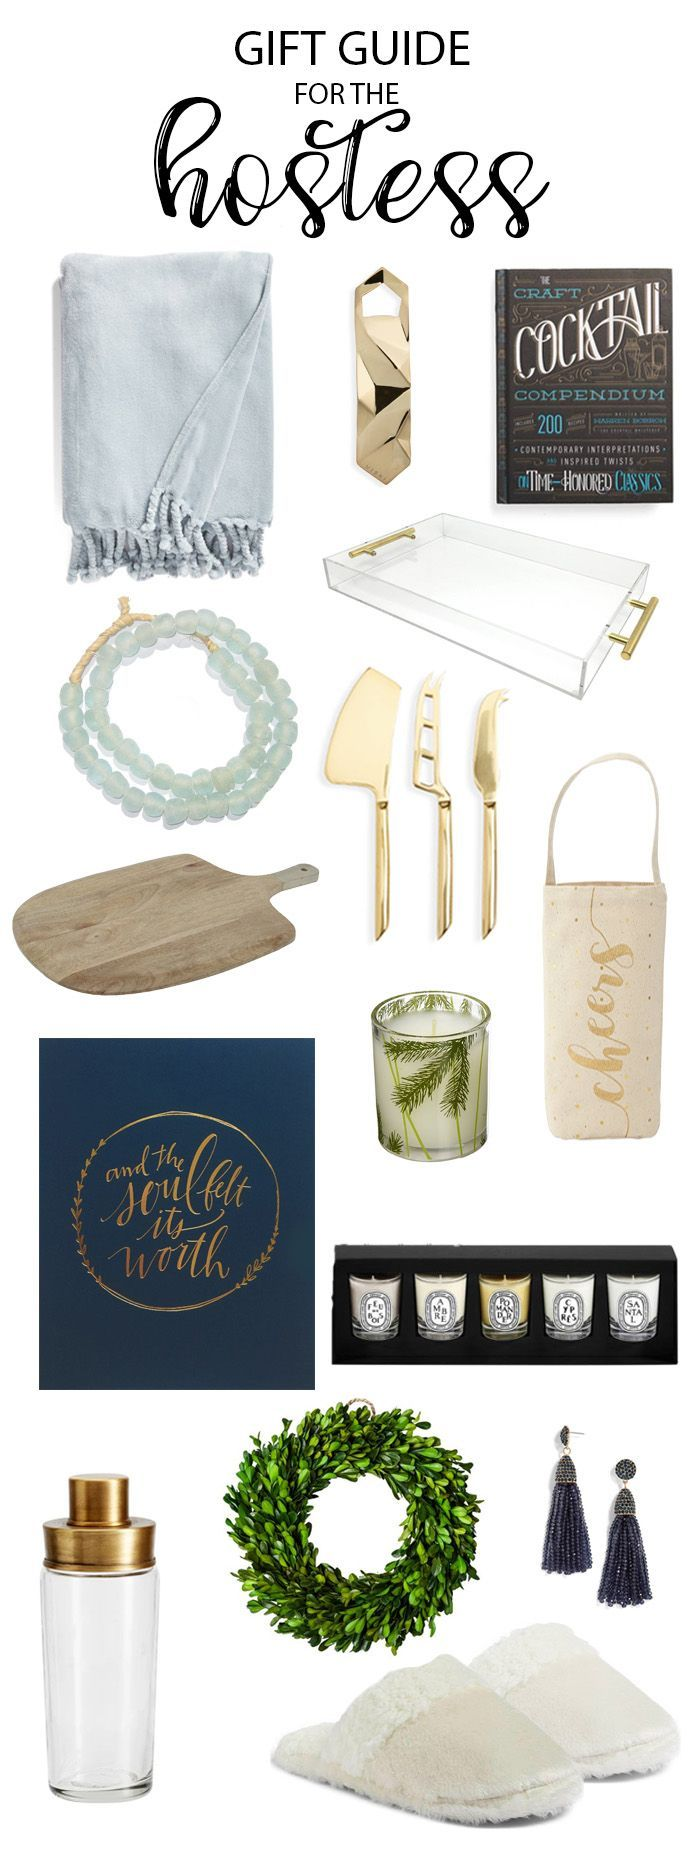 Holiday Gift Guide: For The Hostess - Life On Virginia Street #giftguide #christmasgifts #hostessgifts  #giftsforher #ChristmasDecorations